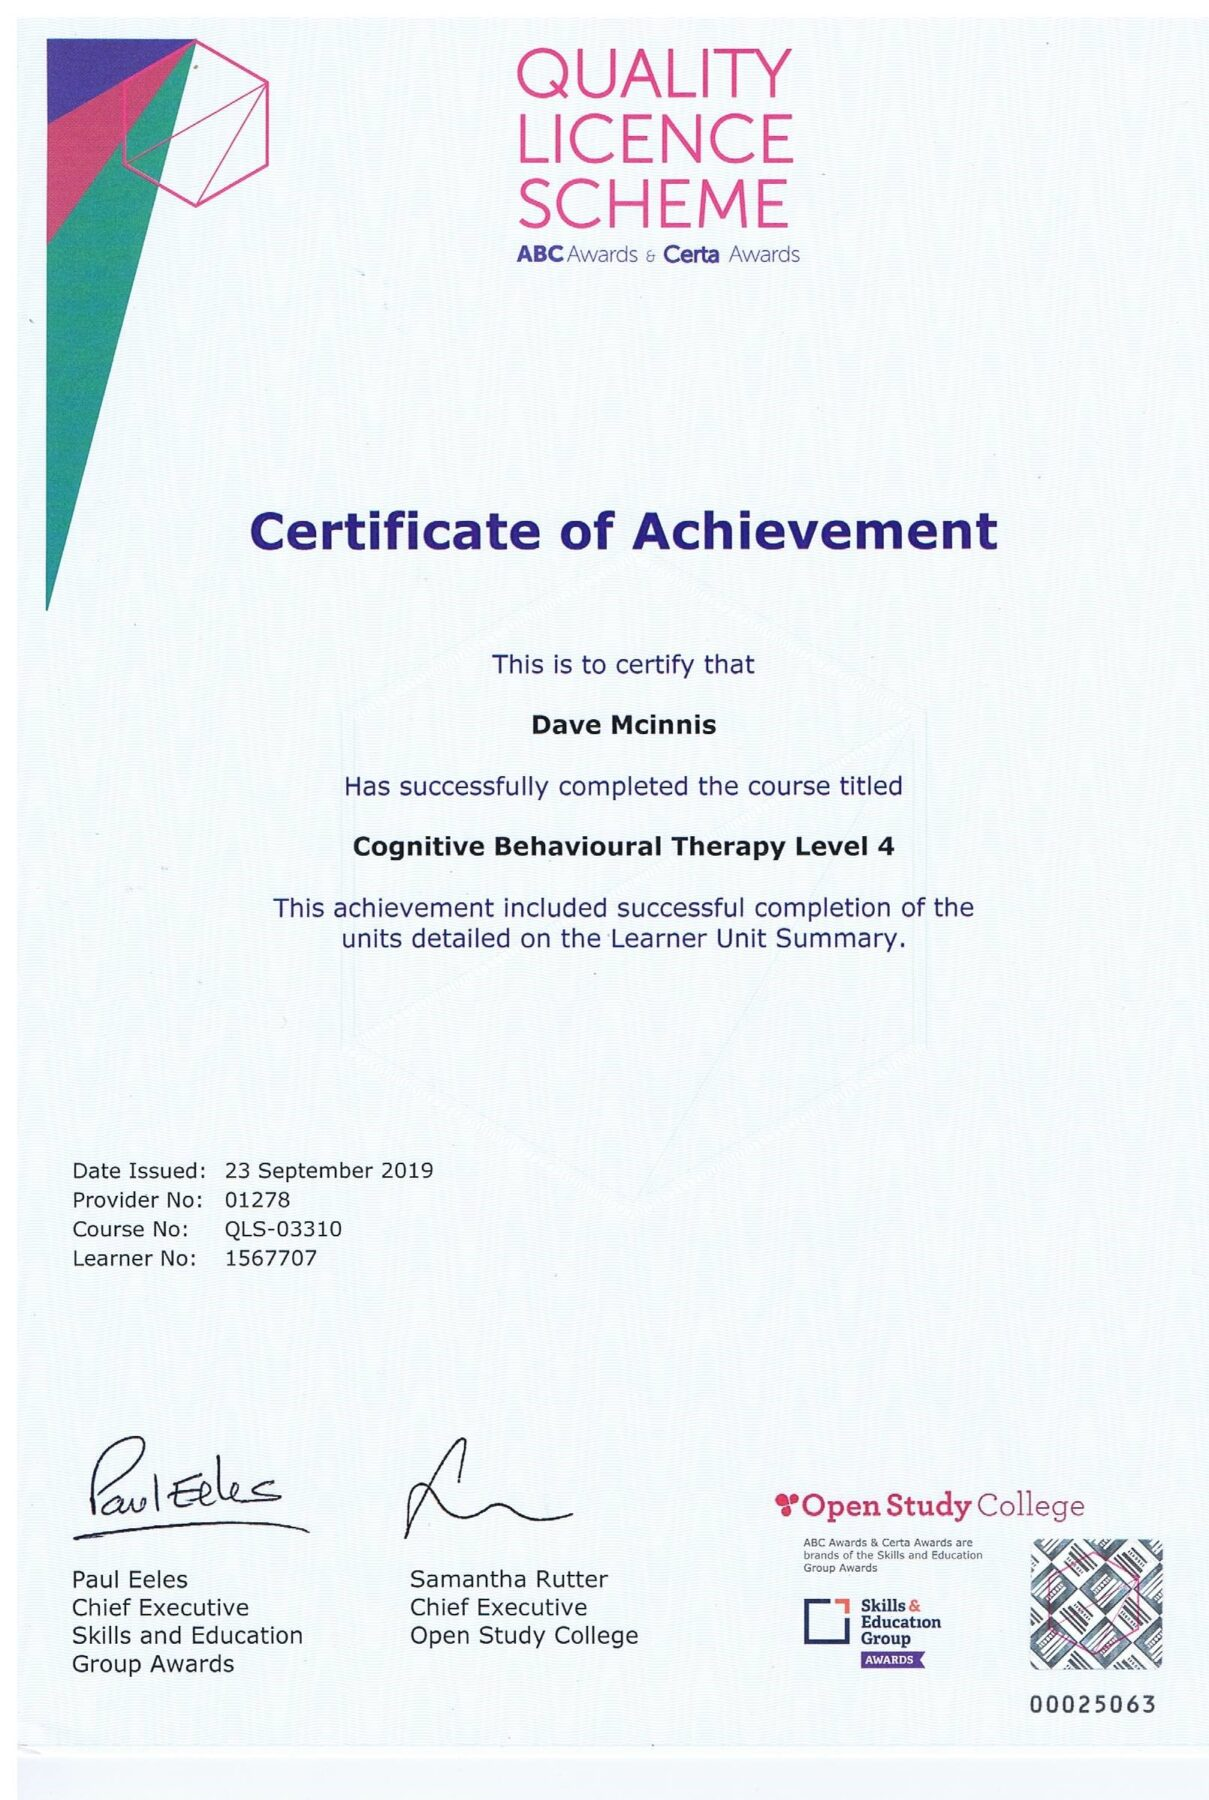 Certificate of Achievement, Cognitive Behavioural Therapy Level 4